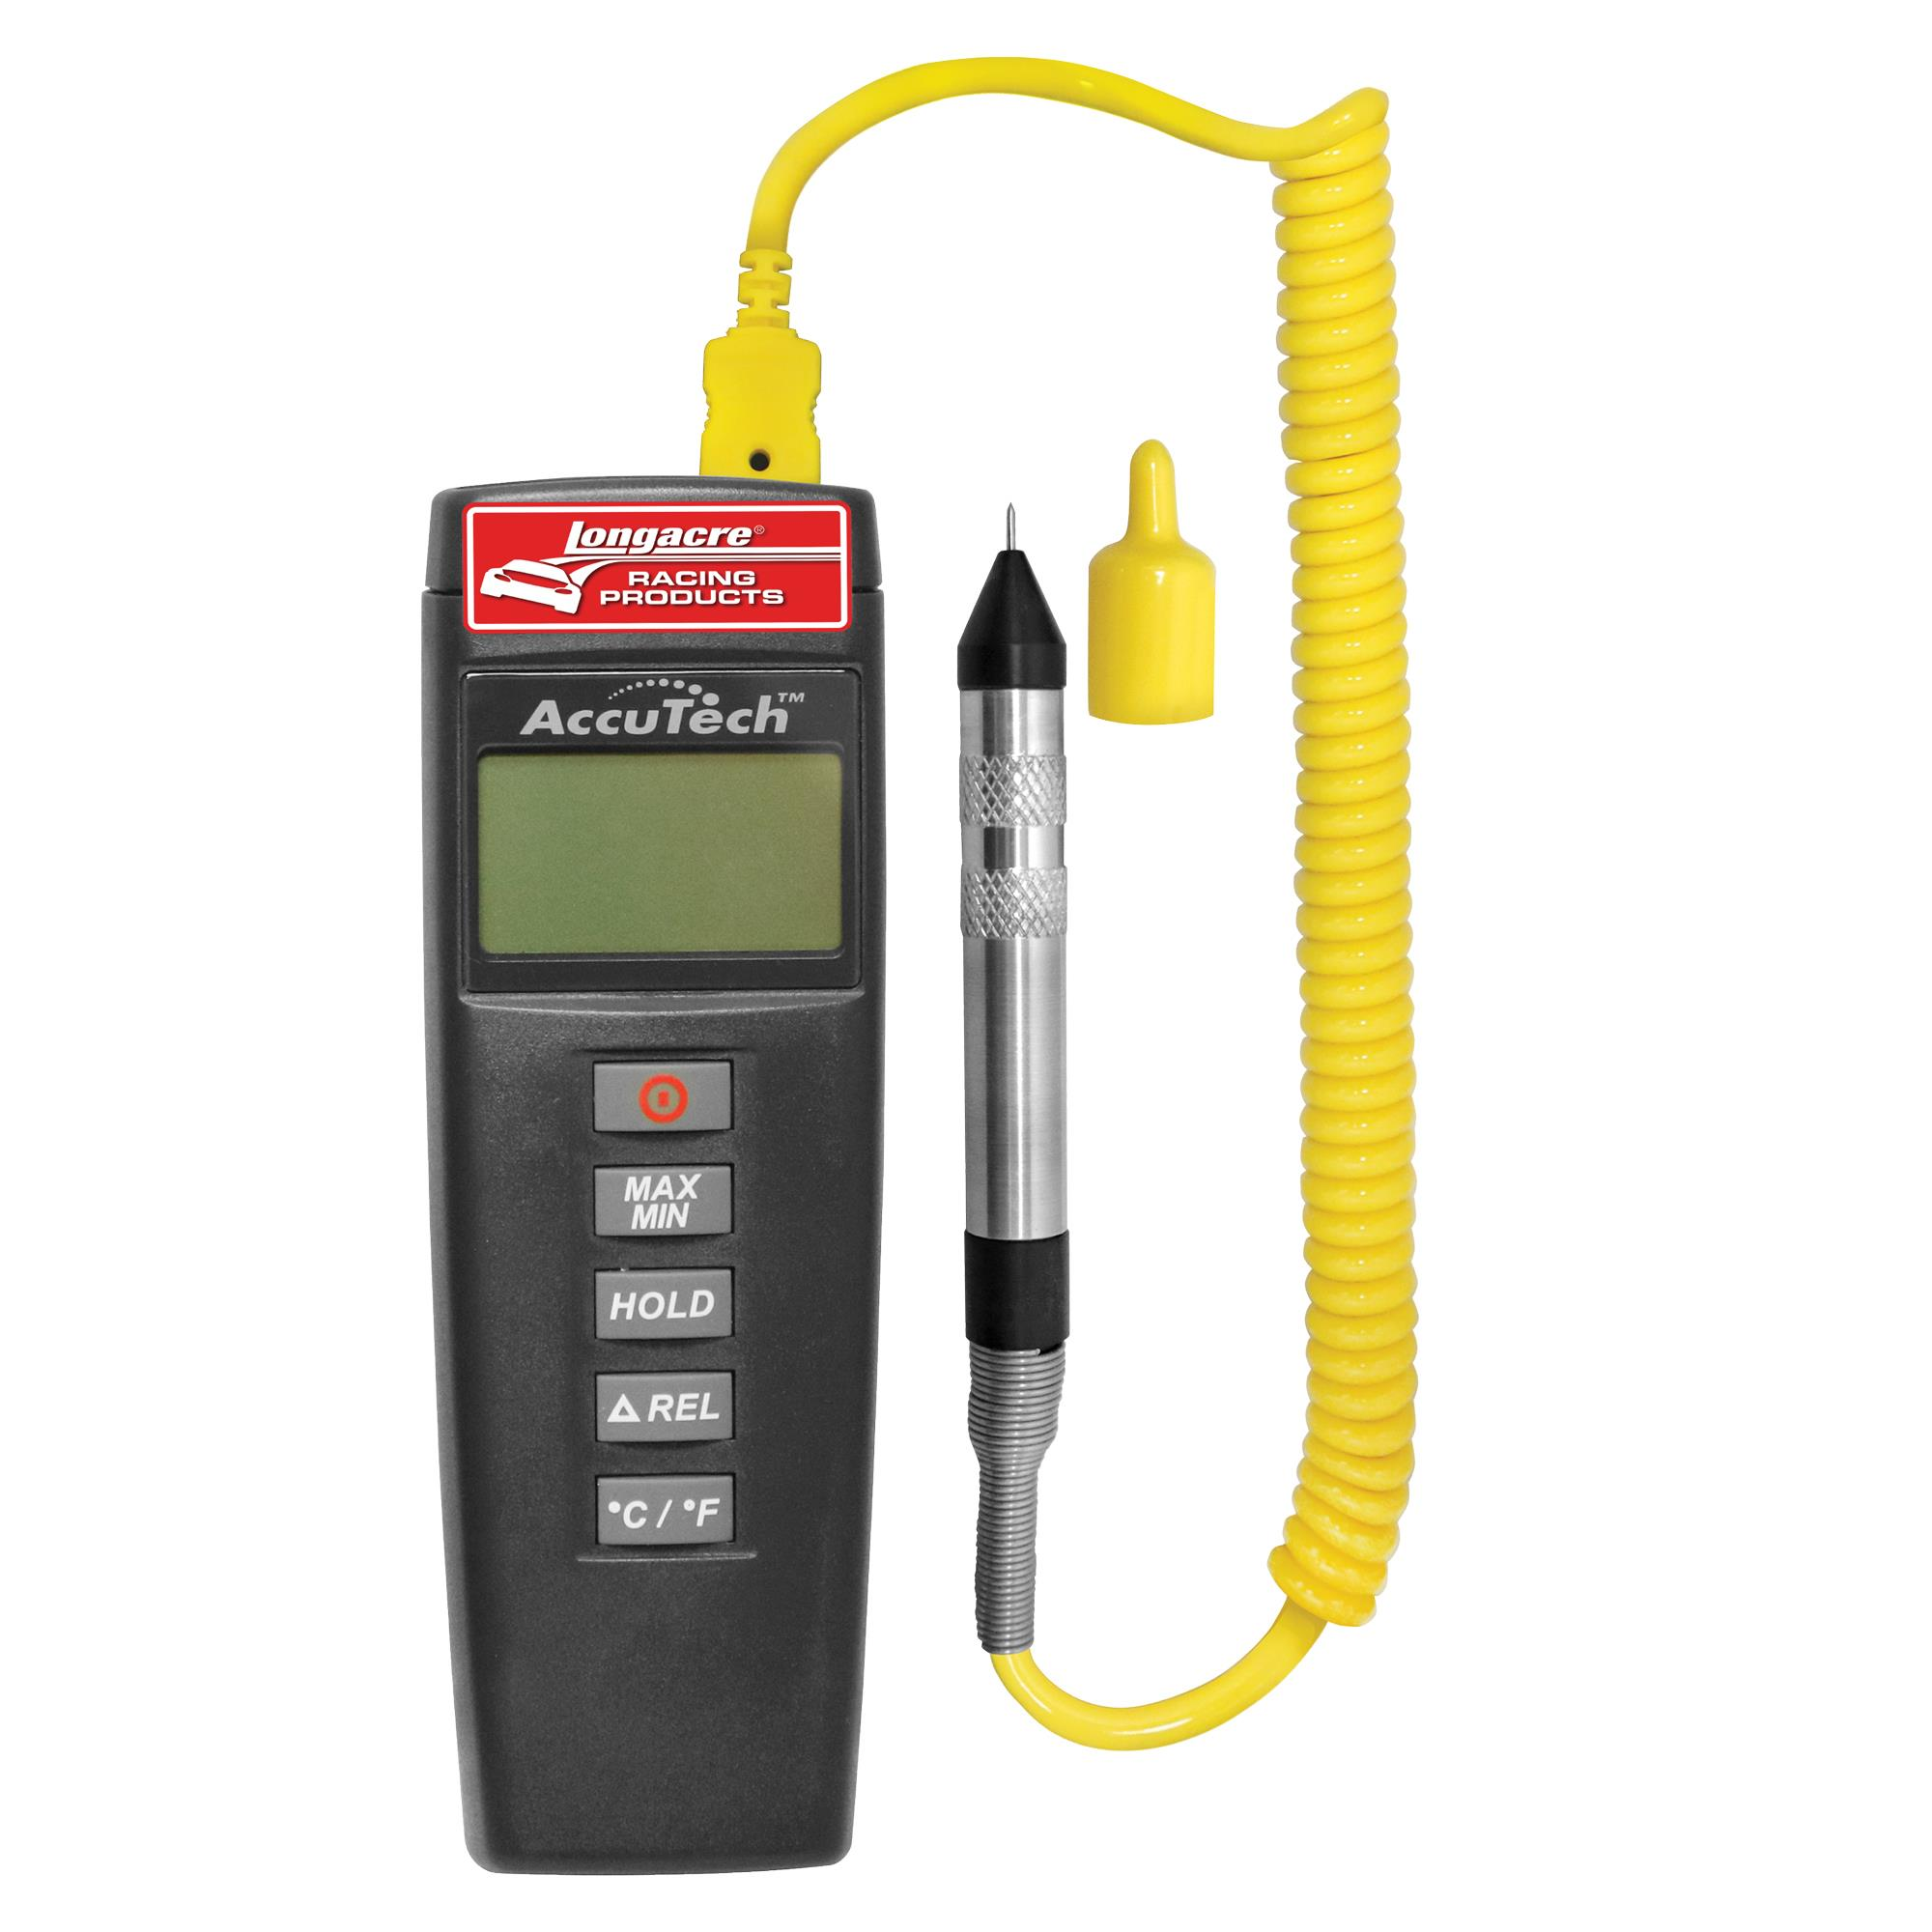 AccuTech™ Deluxe Digital Pyrometer